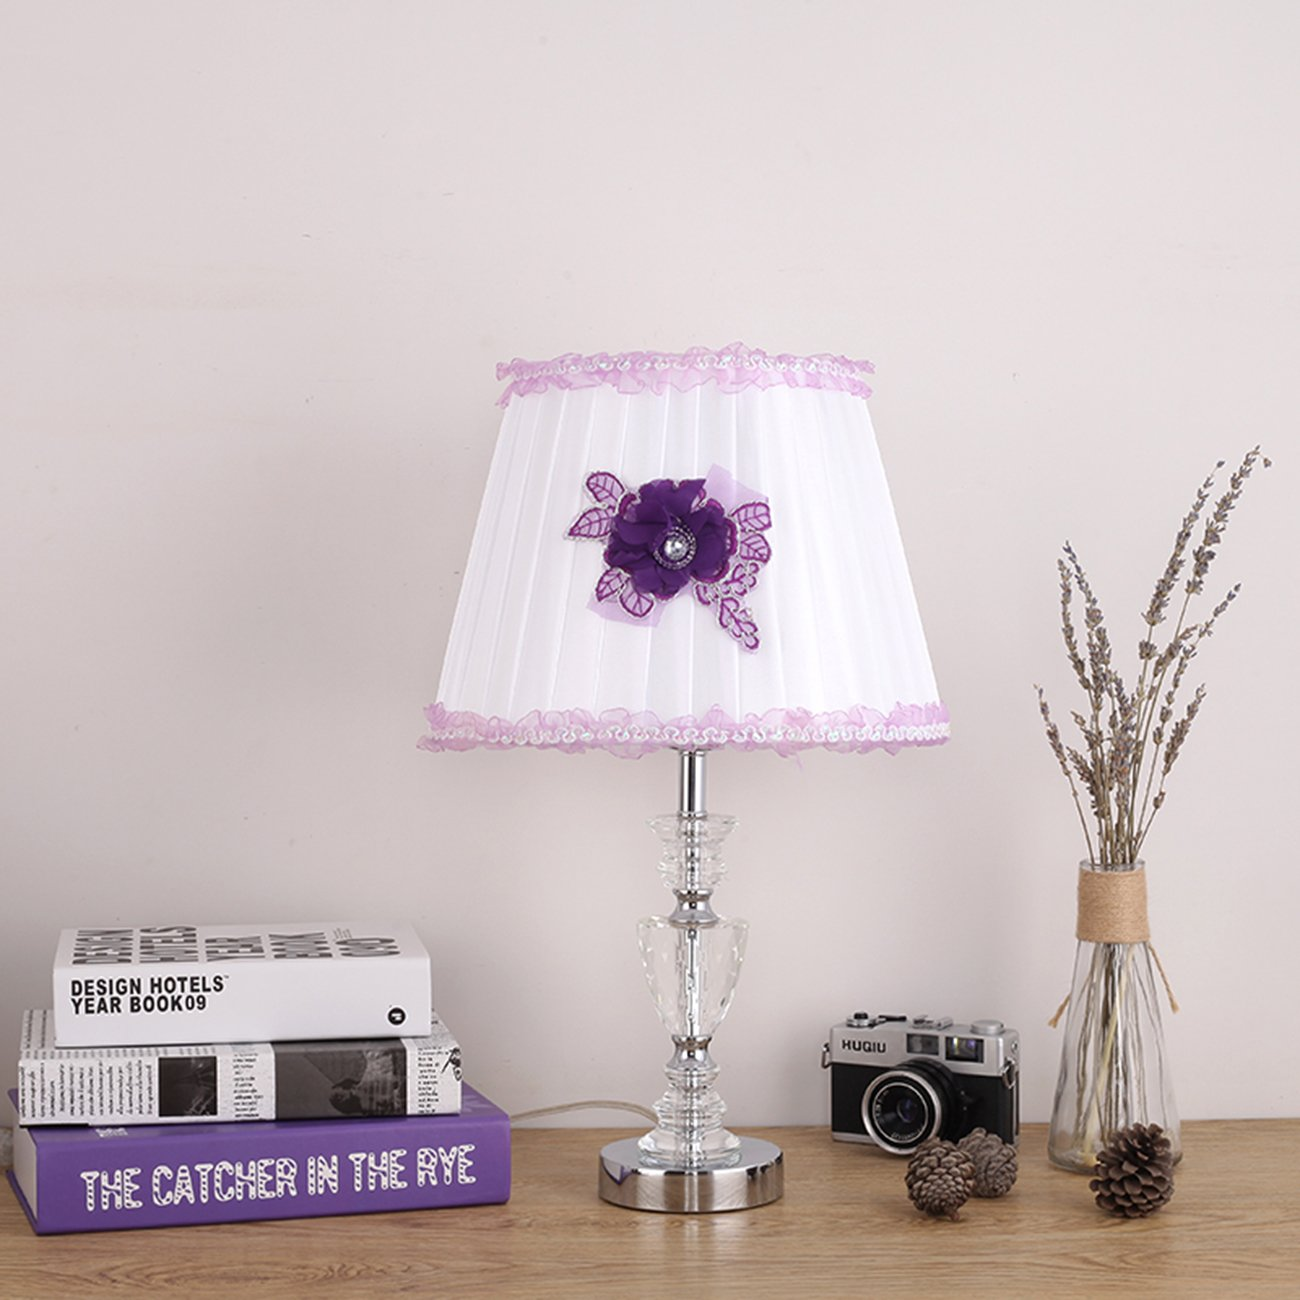 Garwarm Crystal Flower Table Lamps For Living Room Bedroom,3049CM/11.819.3 Inch WH